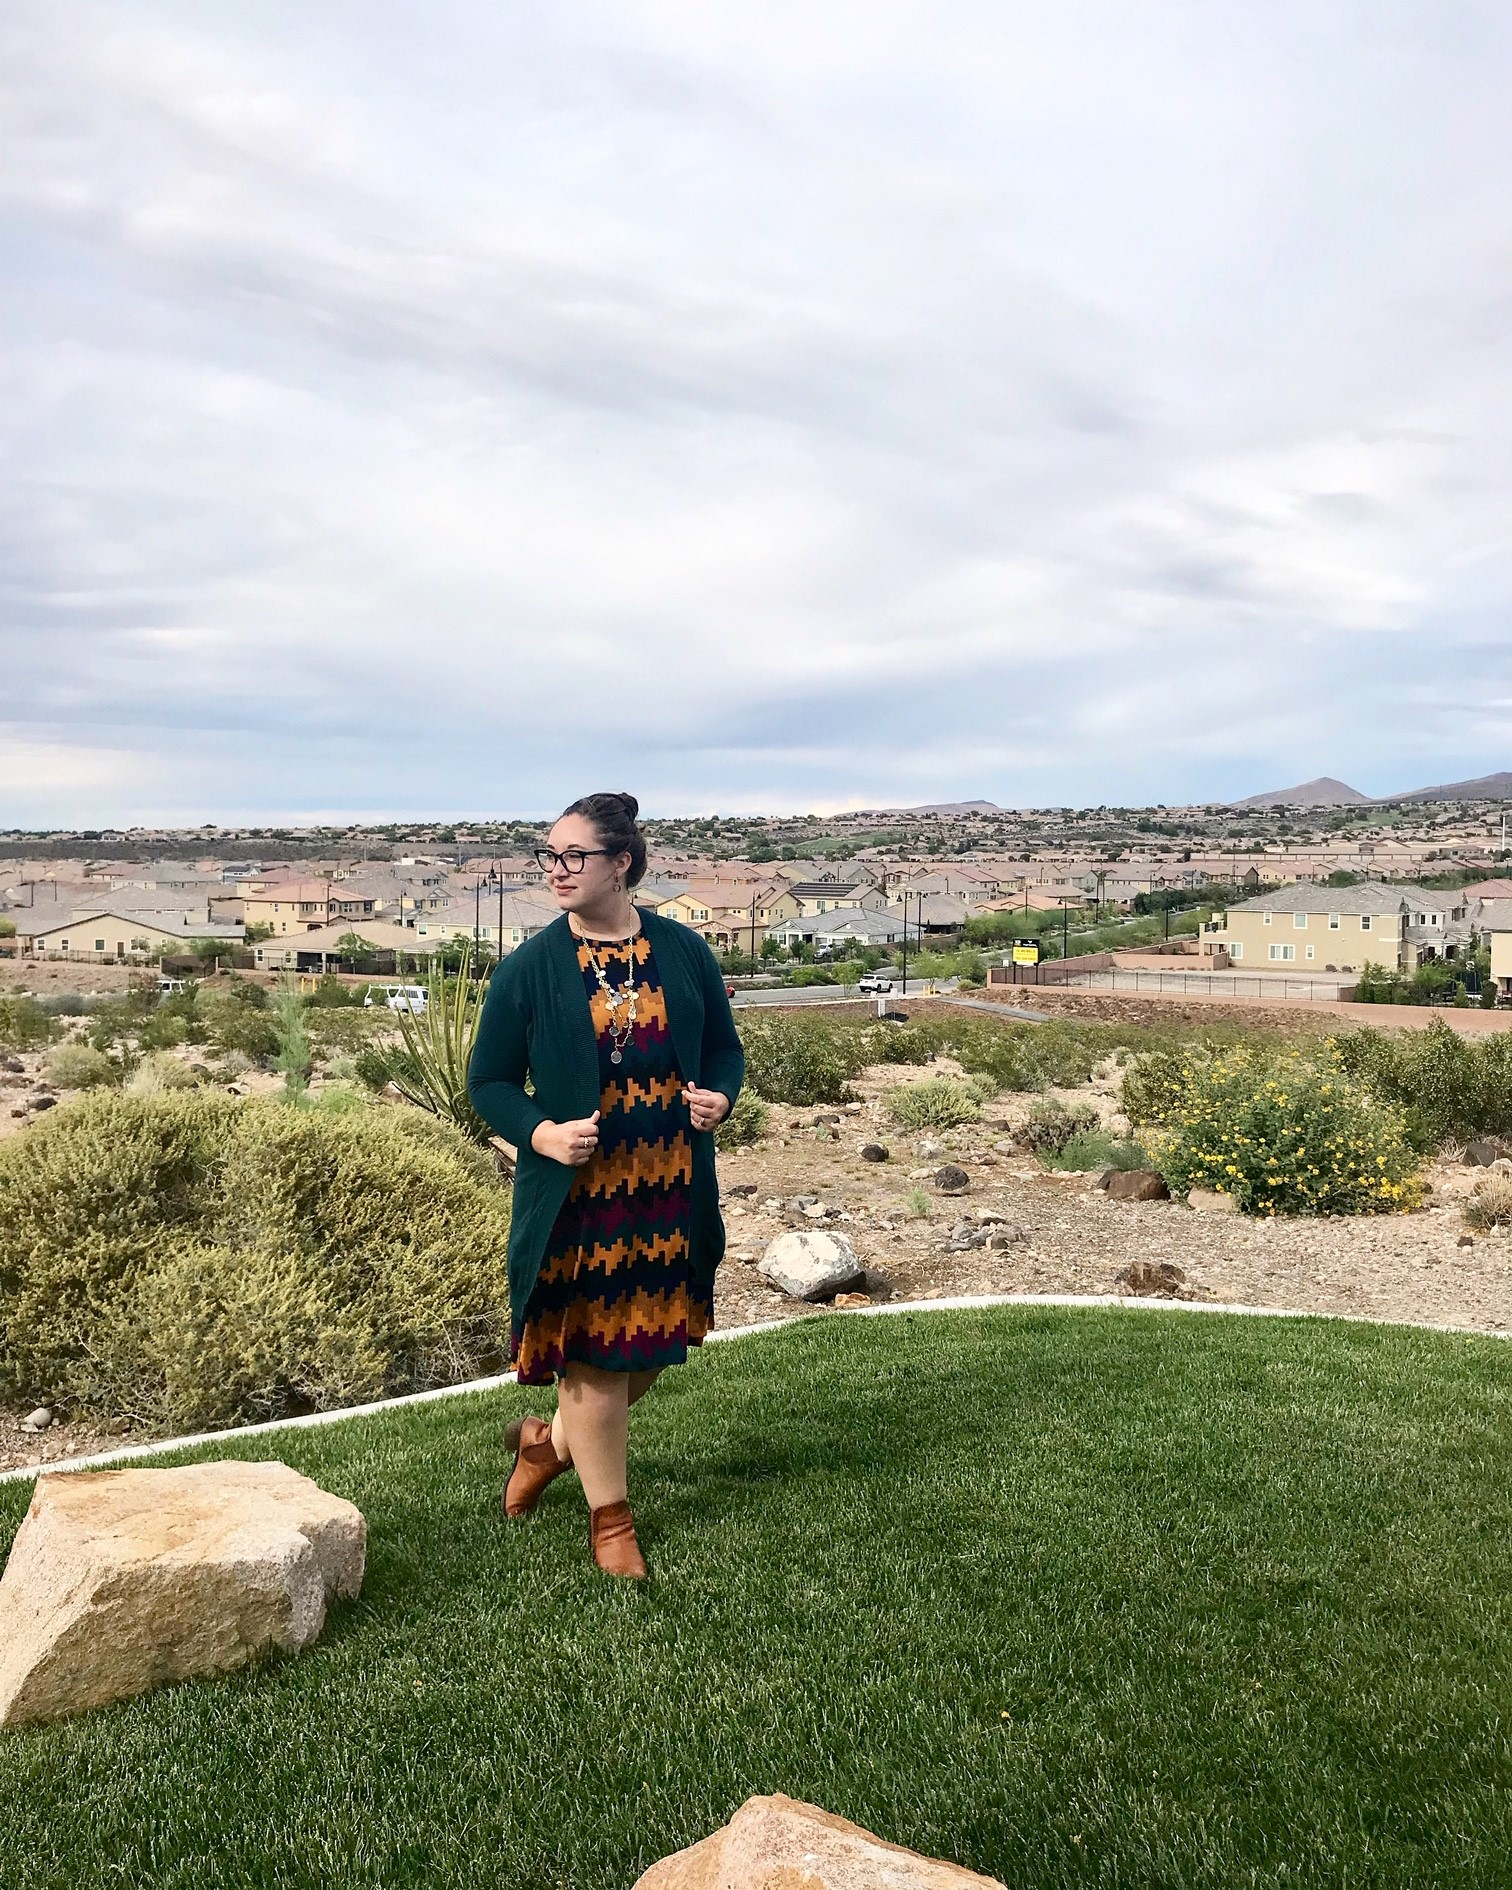 Living in Inspirada 2 by Shelby Dunscomb for LasVegasRealEstate.com